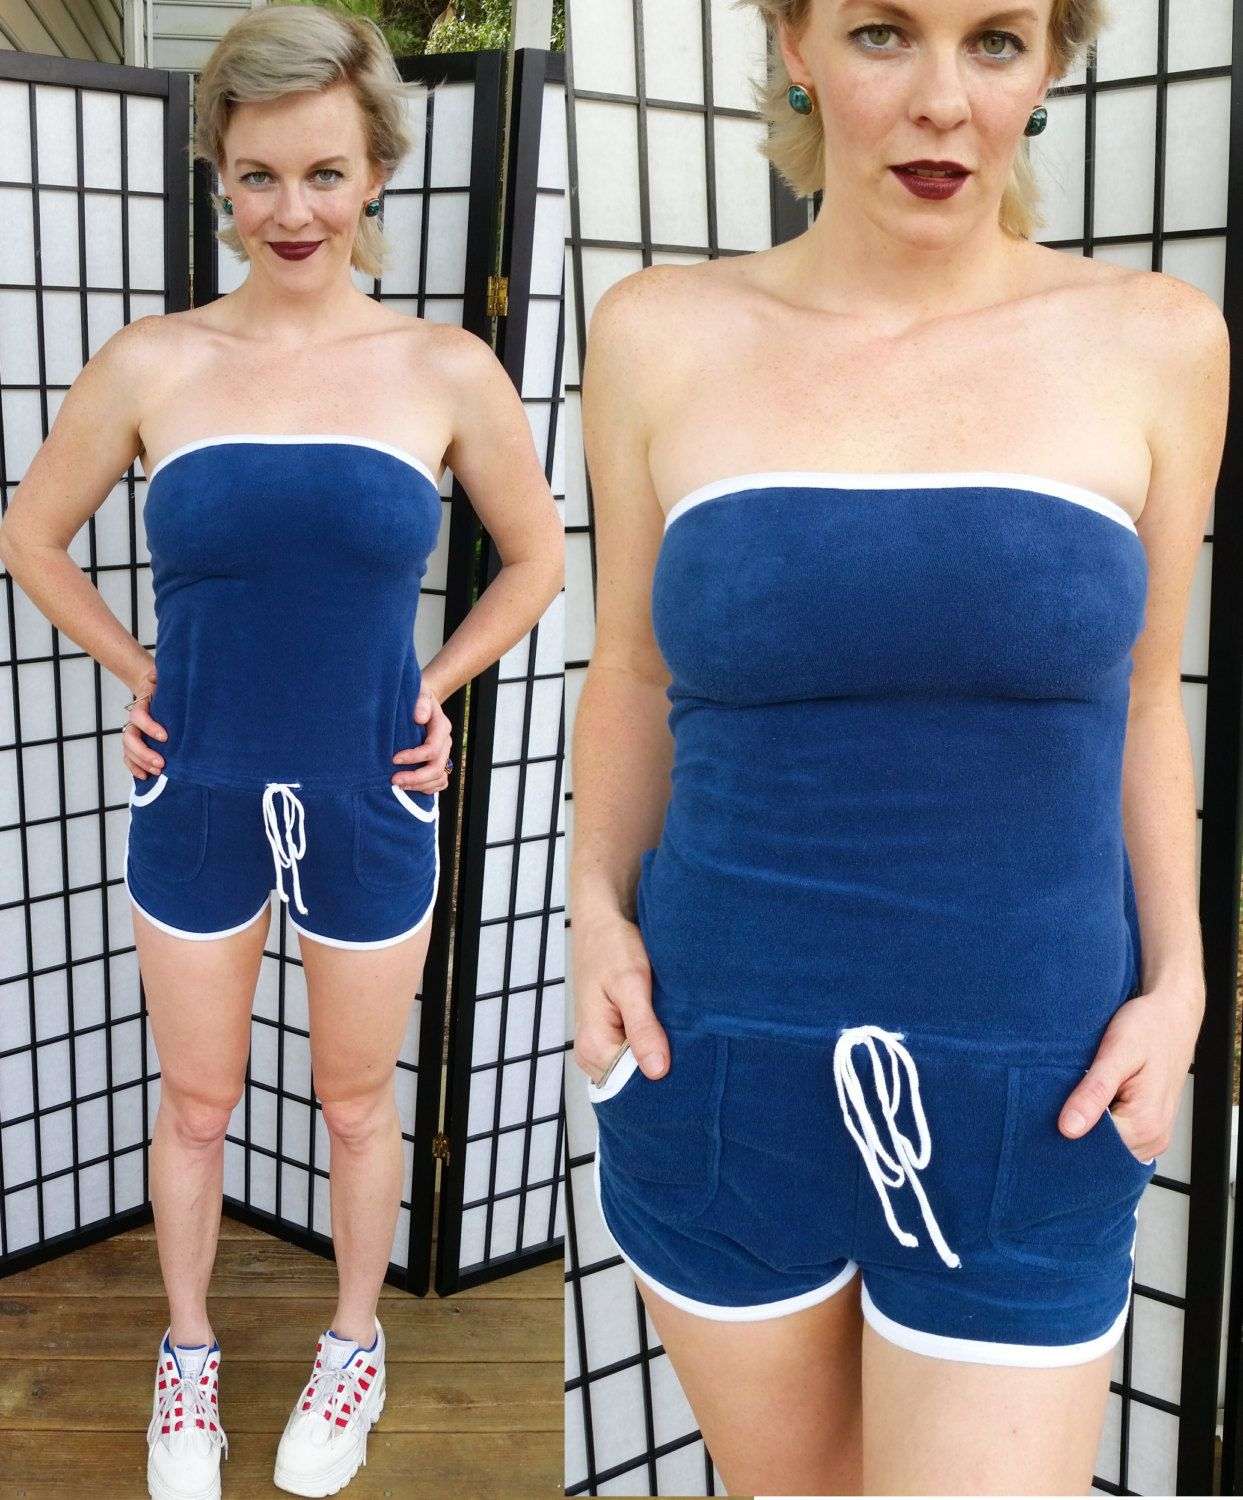 db7d865166c2 Vintage STRAPLESS Disco Romper Navy   White 90s-does-70s Jumpsuit Adorable  Roller Girl Booty Short Onesie